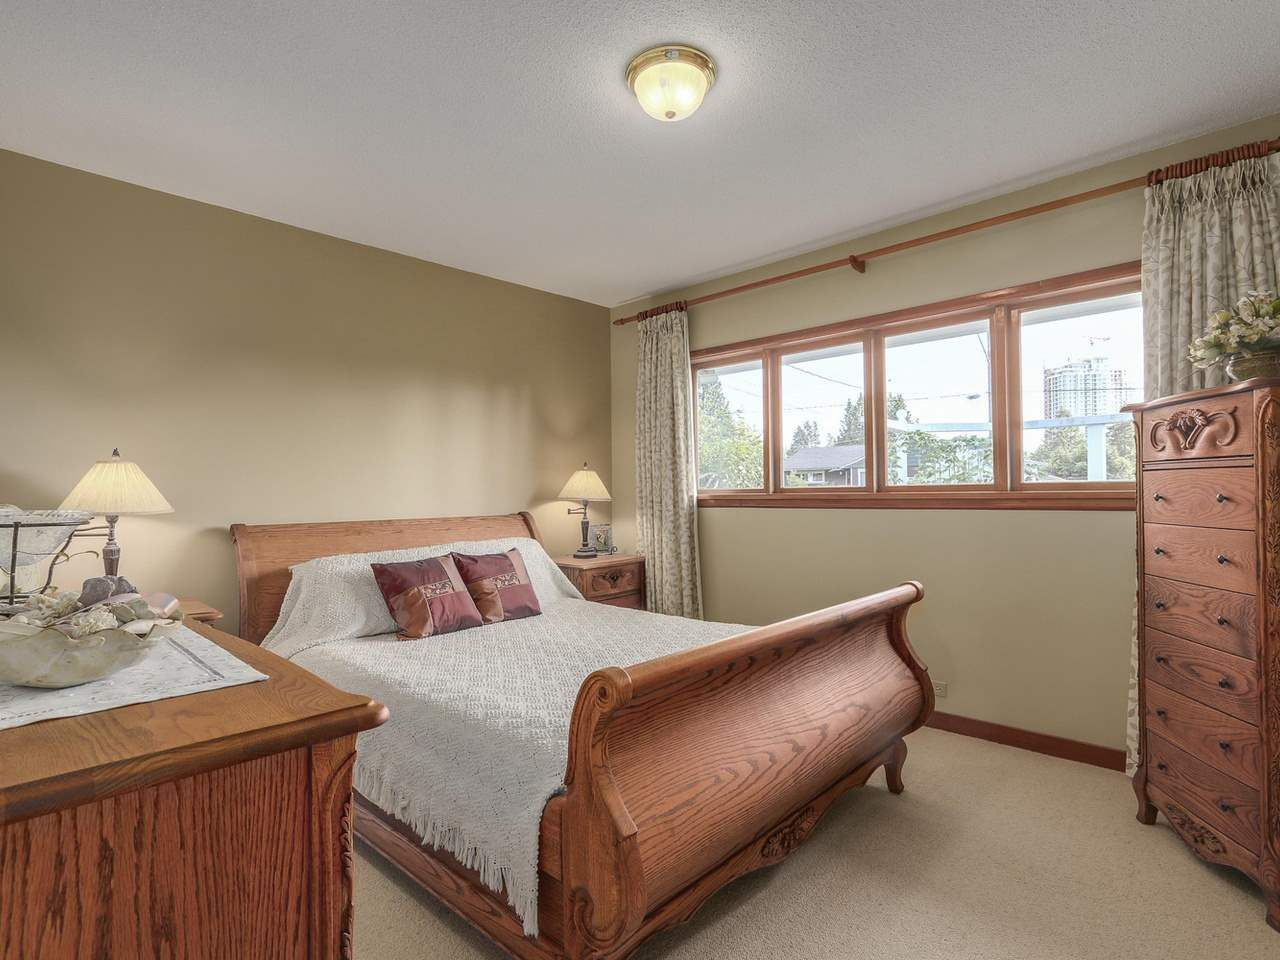 Photo 11: Photos: 587 HARRISON Avenue in Coquitlam: Coquitlam West House for sale : MLS®# R2097877